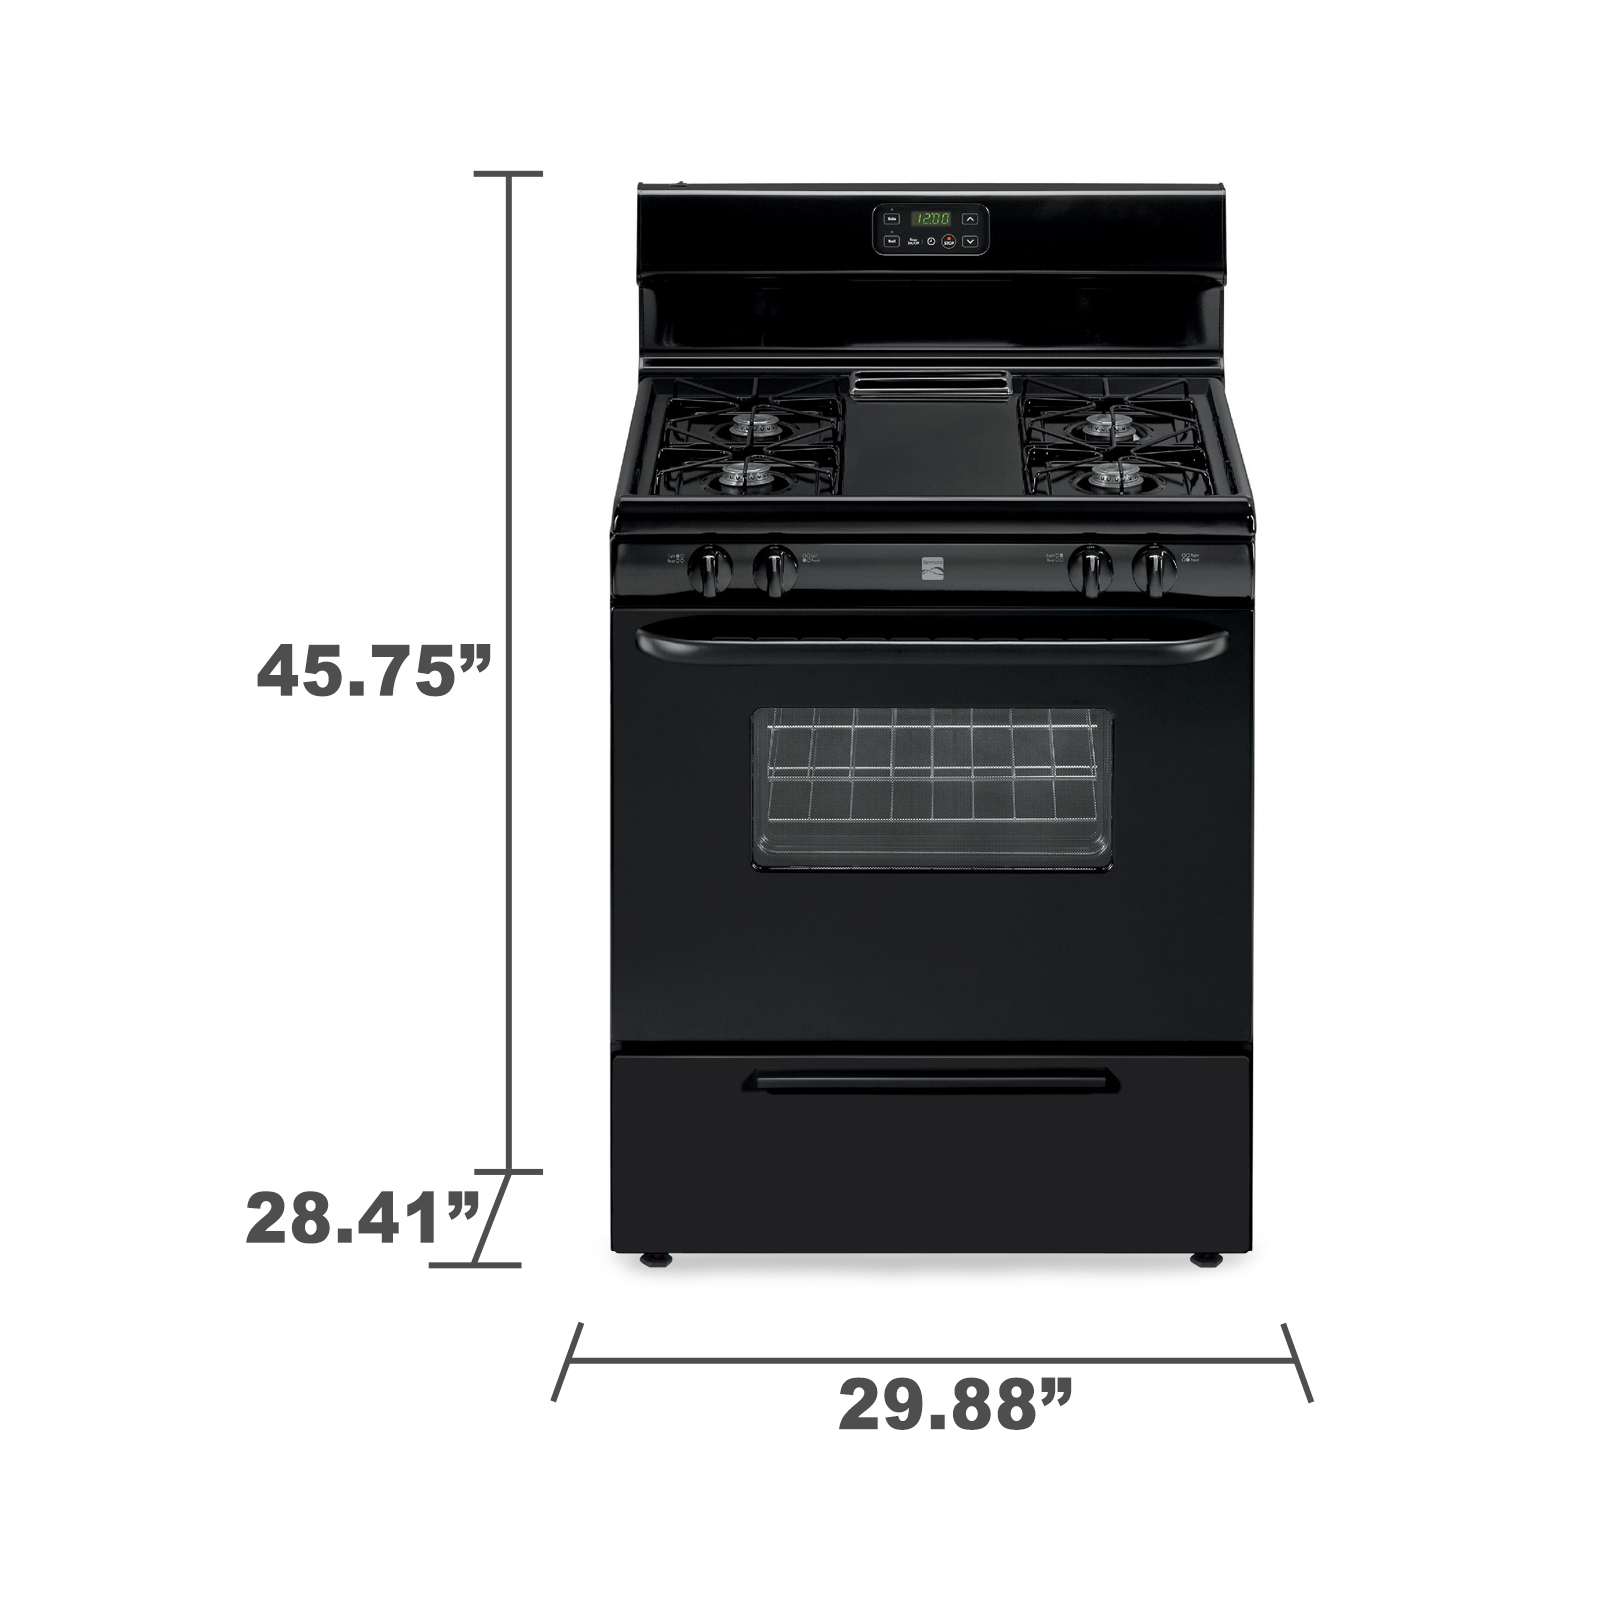 Kenmore 73039 4.2 cu. ft. Freestanding Gas Range w/ Broil & Serve™ Drawer - Black